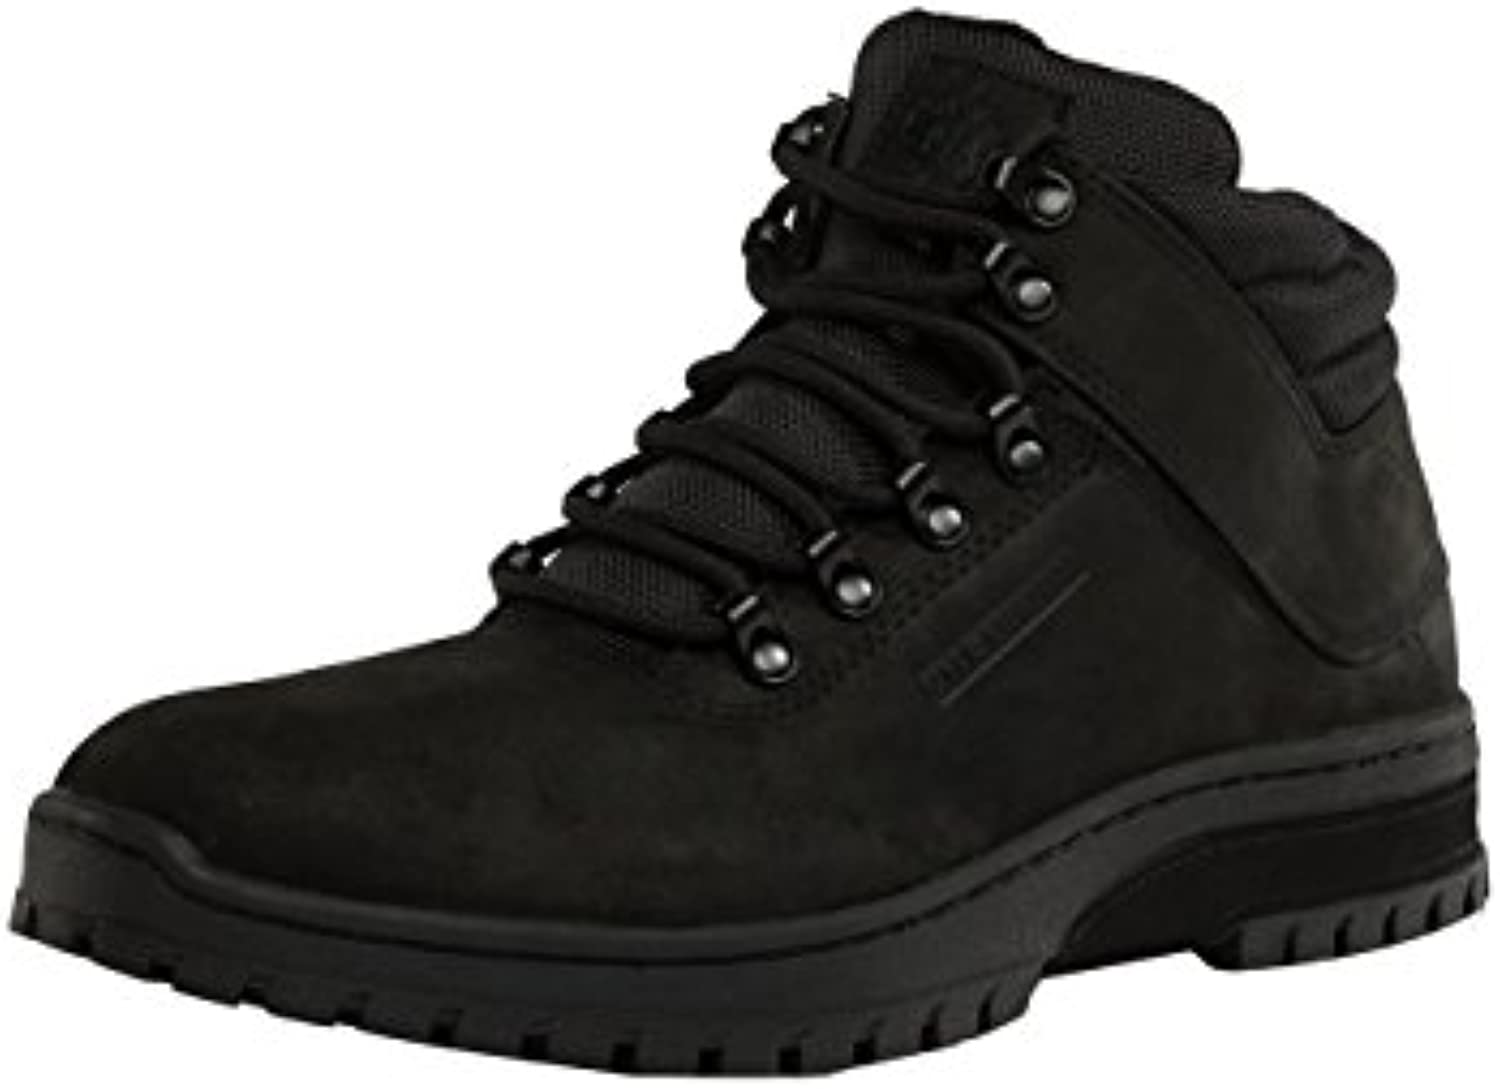 Park Authority by K1X H1ke Territory Boot Blackout